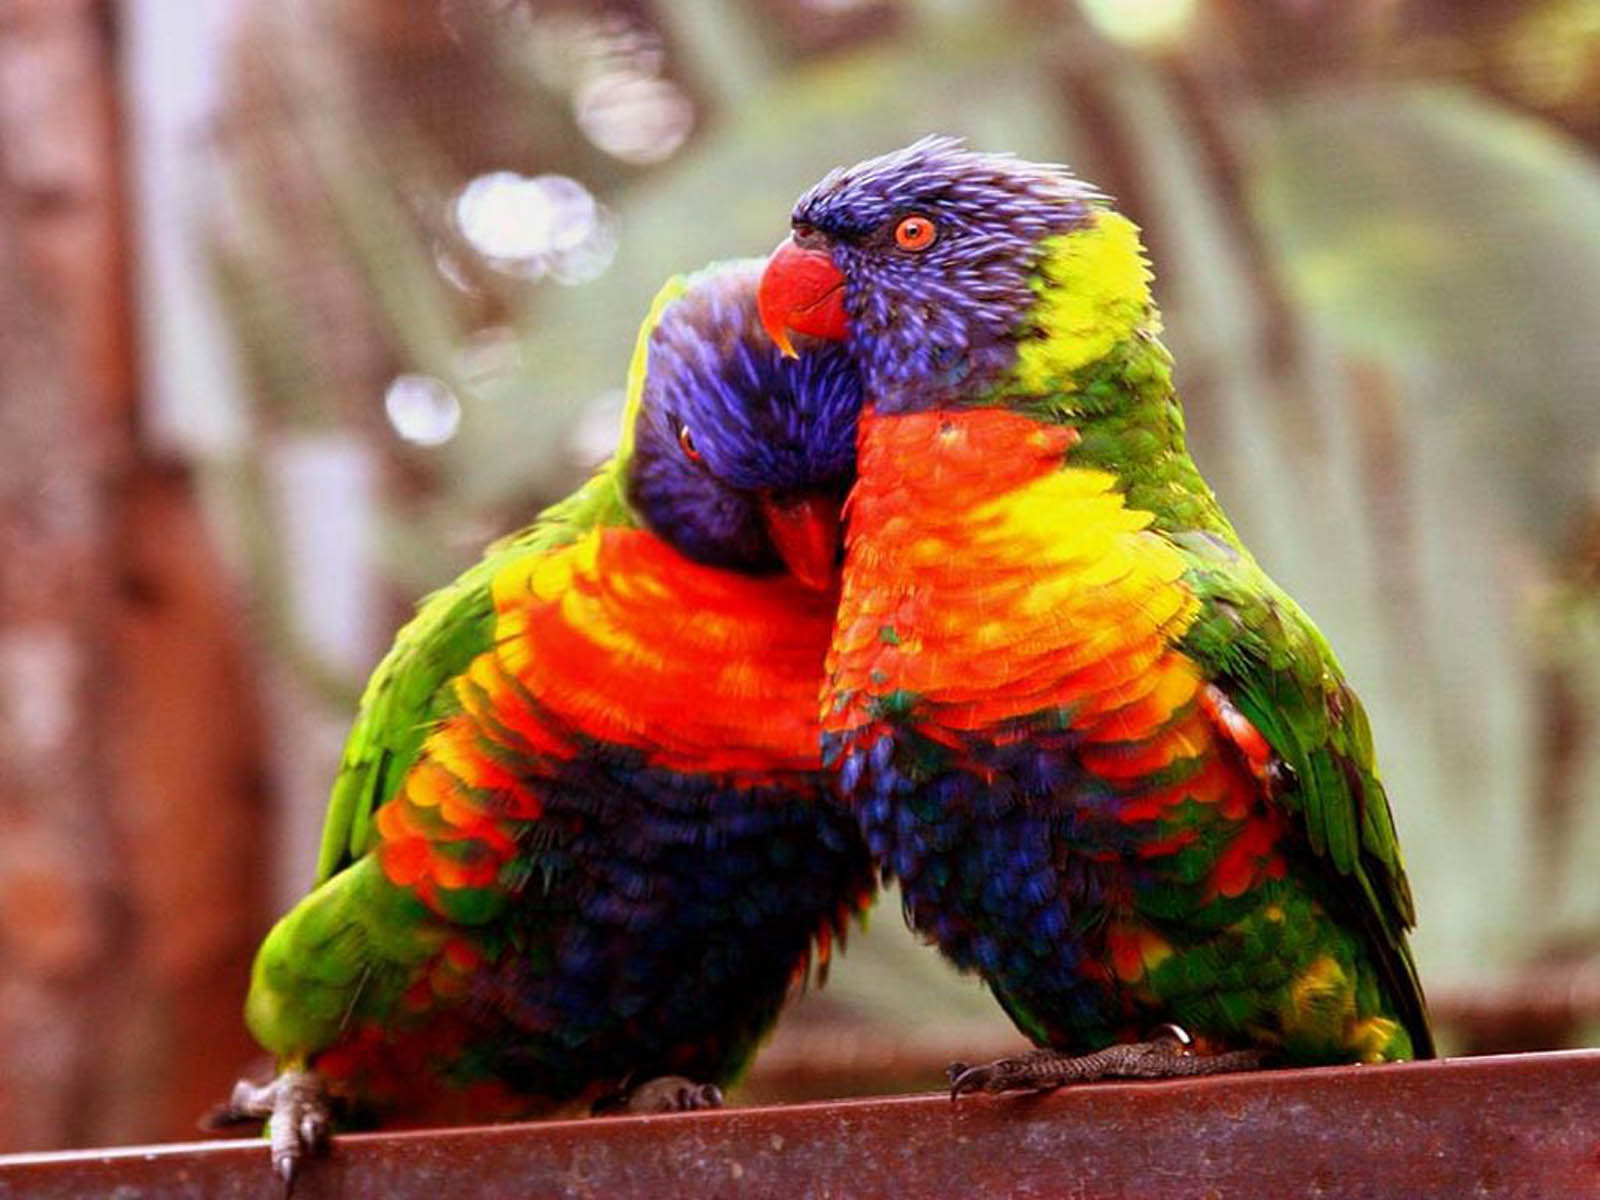 Love Birds Hd Wallpapers And Images Free Download: XS Wallpapers HD: Love Birds Wallpapers